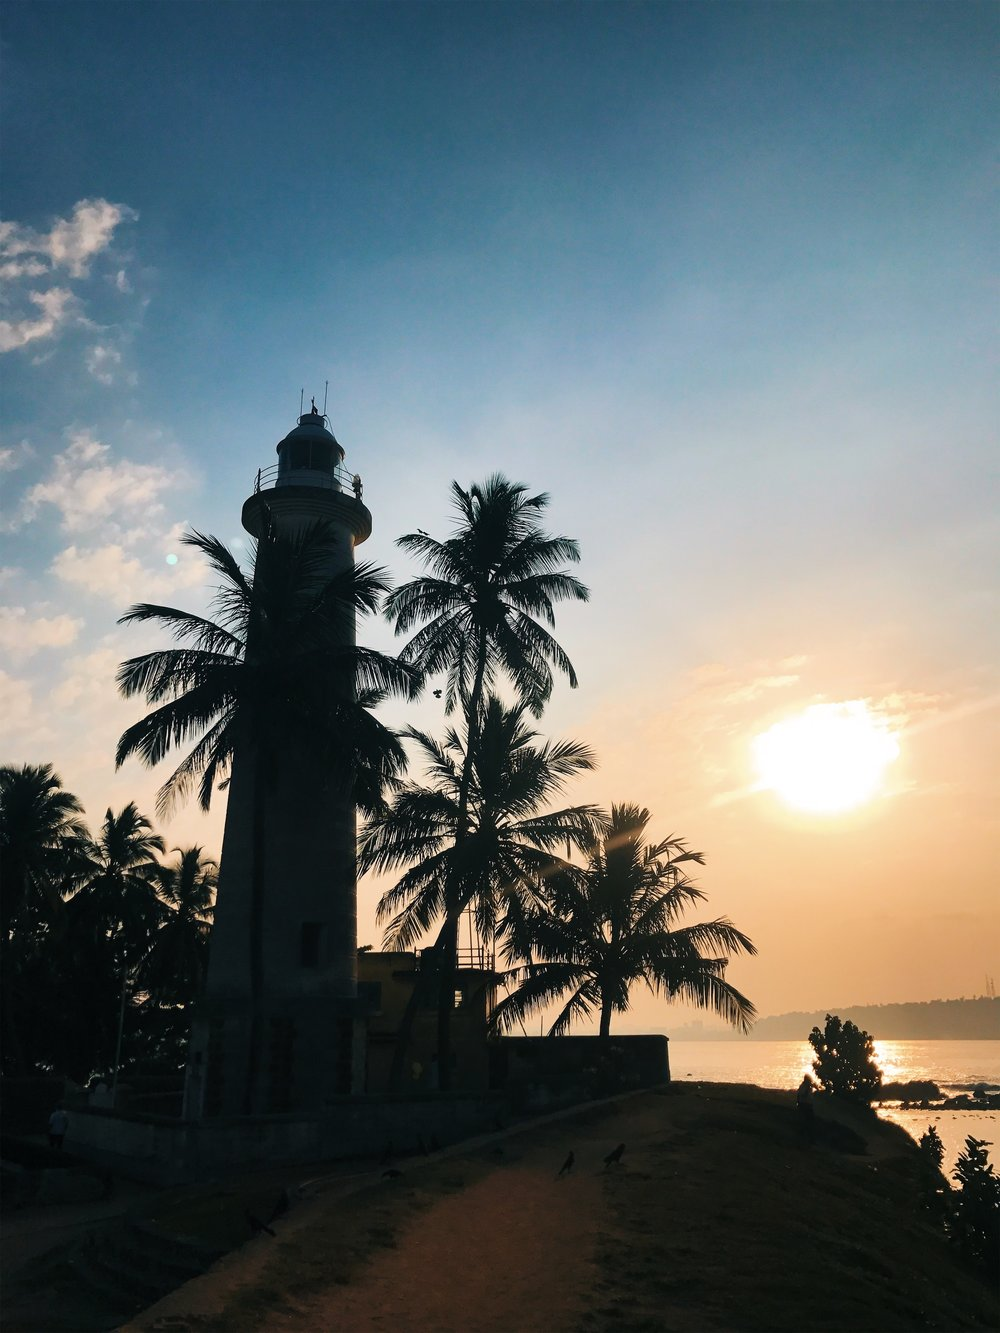 Sunrise at Galle Fort